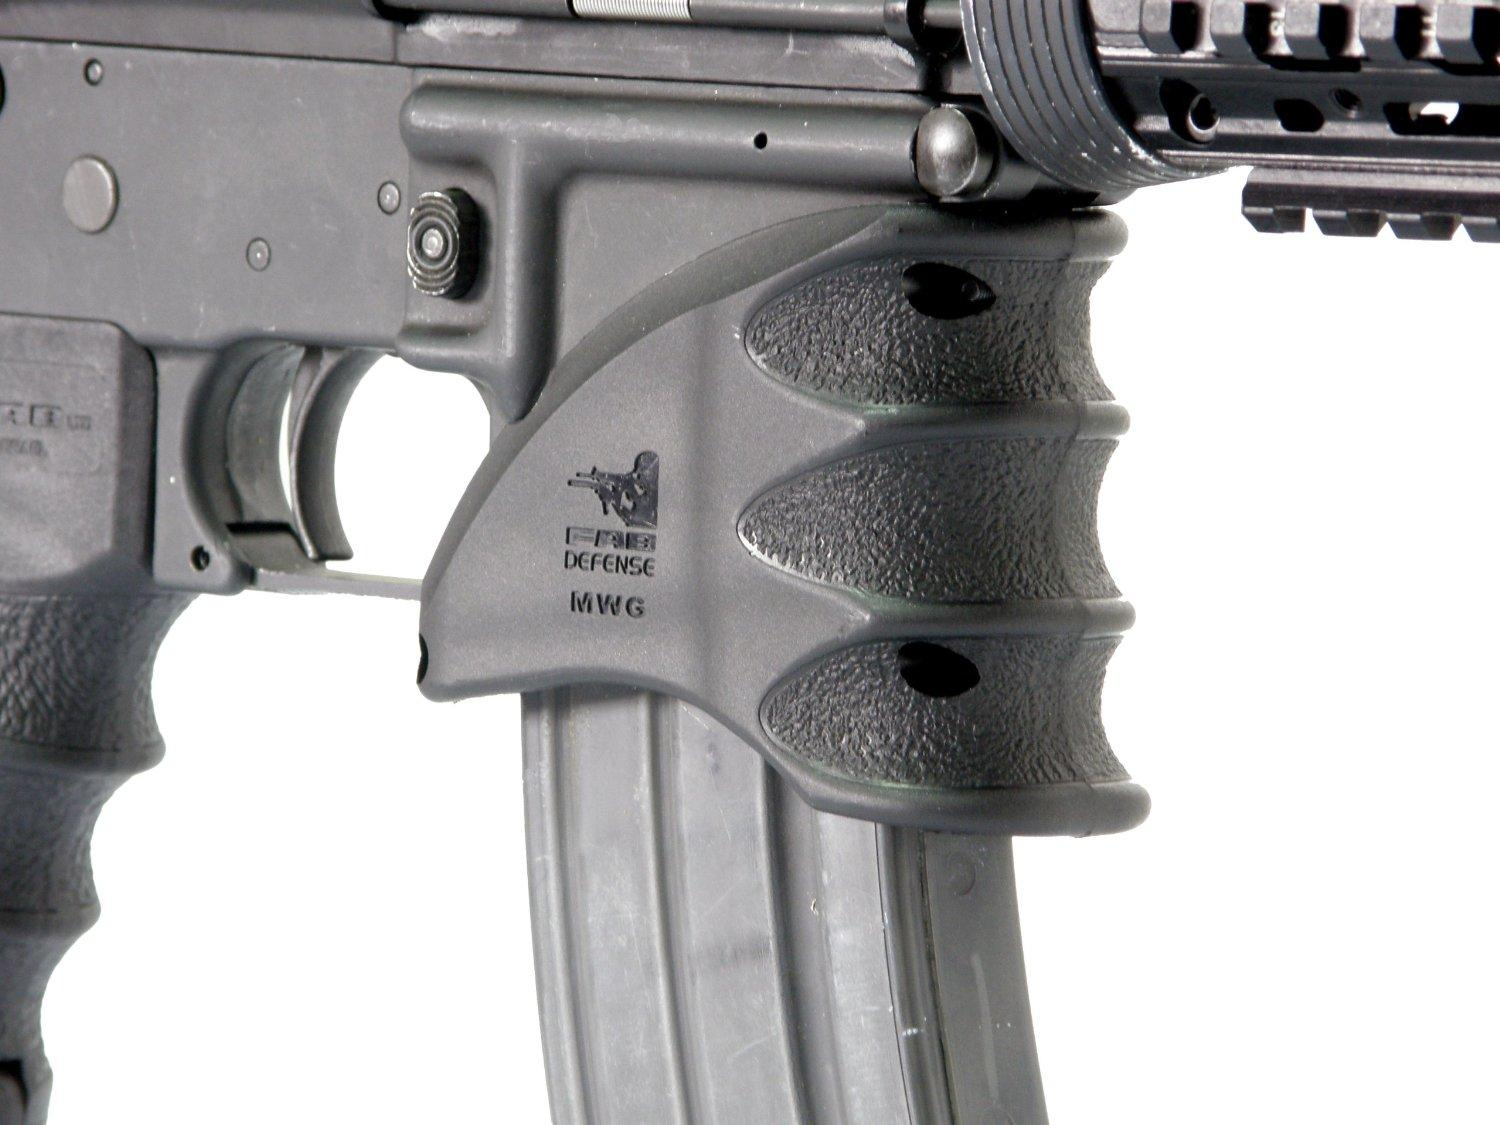 Fab Mwg Defense Magazine Well Gun Grip And Magwell Funnel